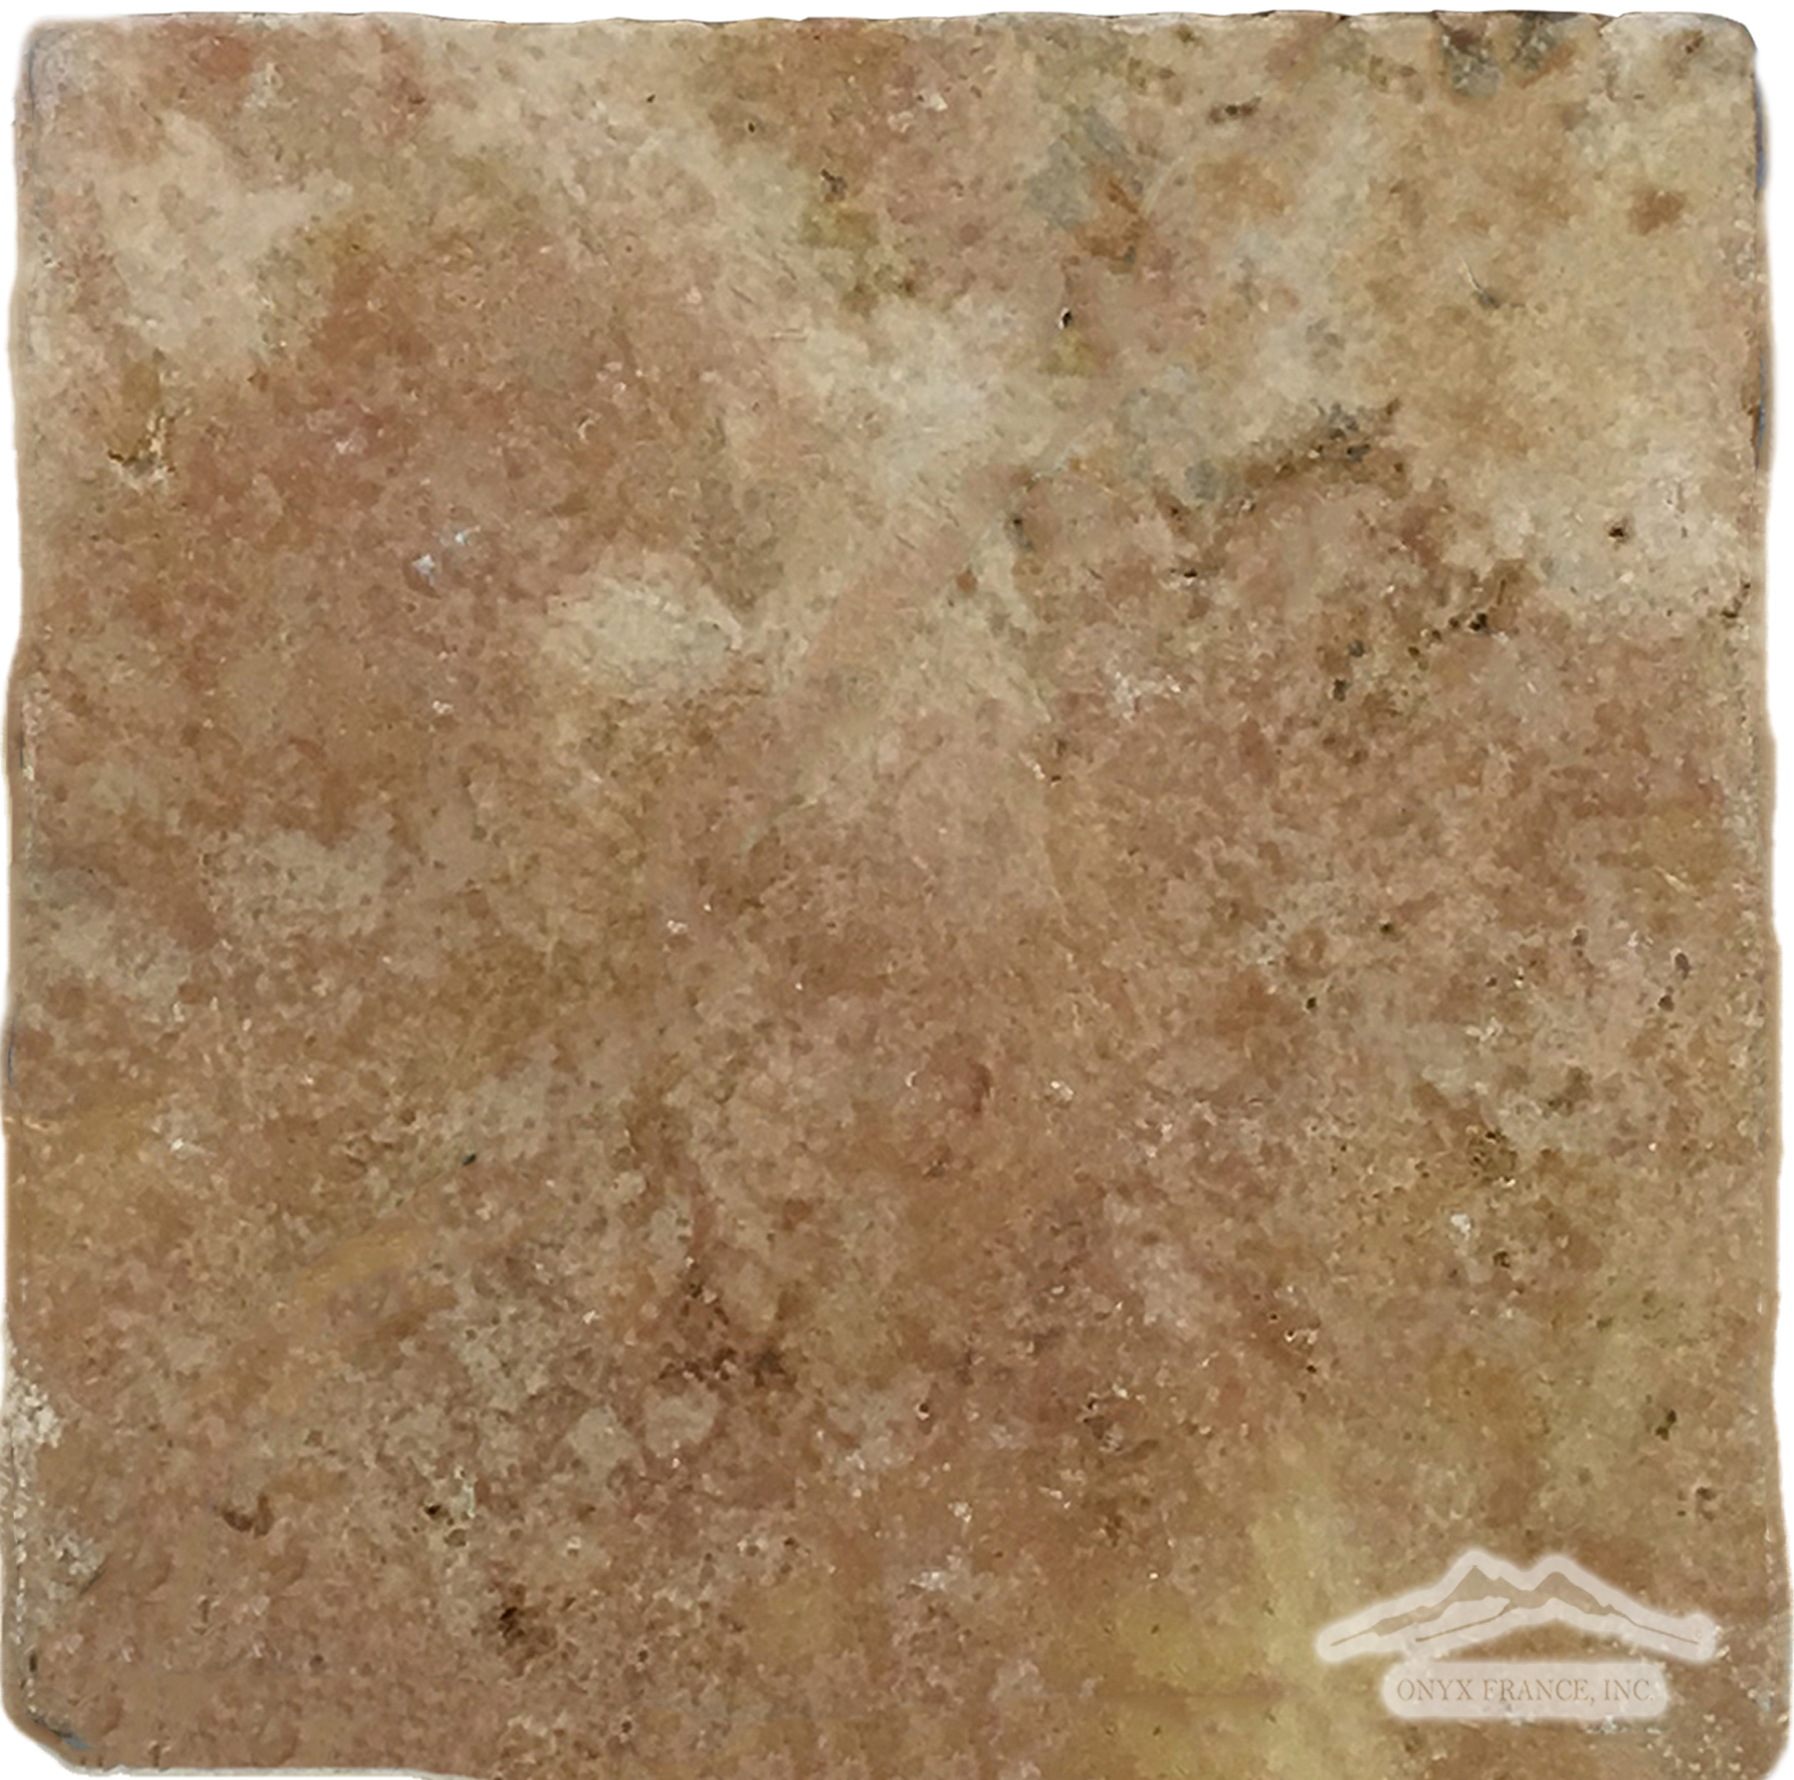 "Peach Travertine 12"" x 12"" Tumbled"